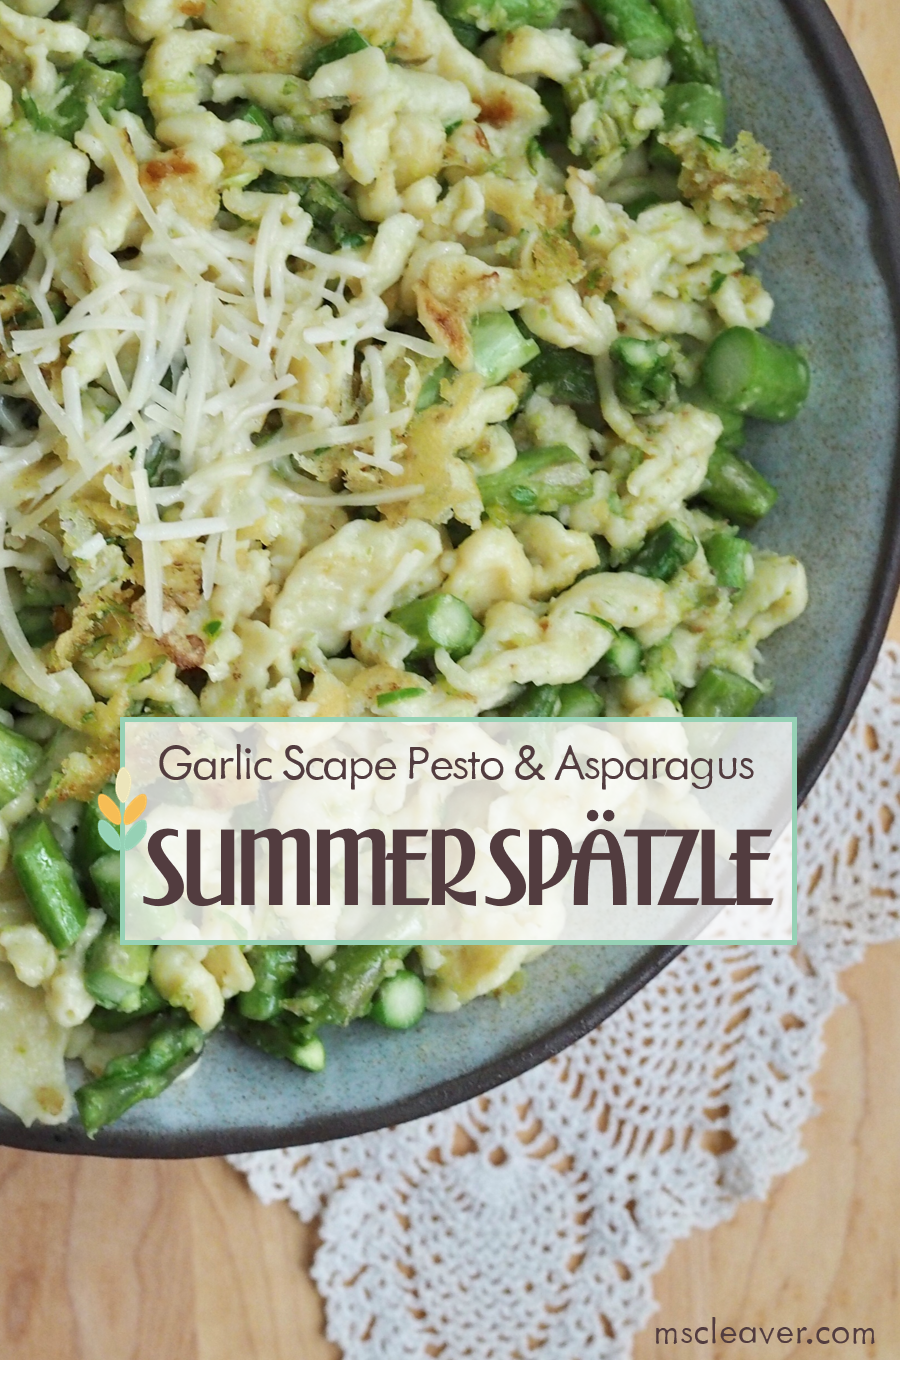 Summer Spaetzle Recipe.png